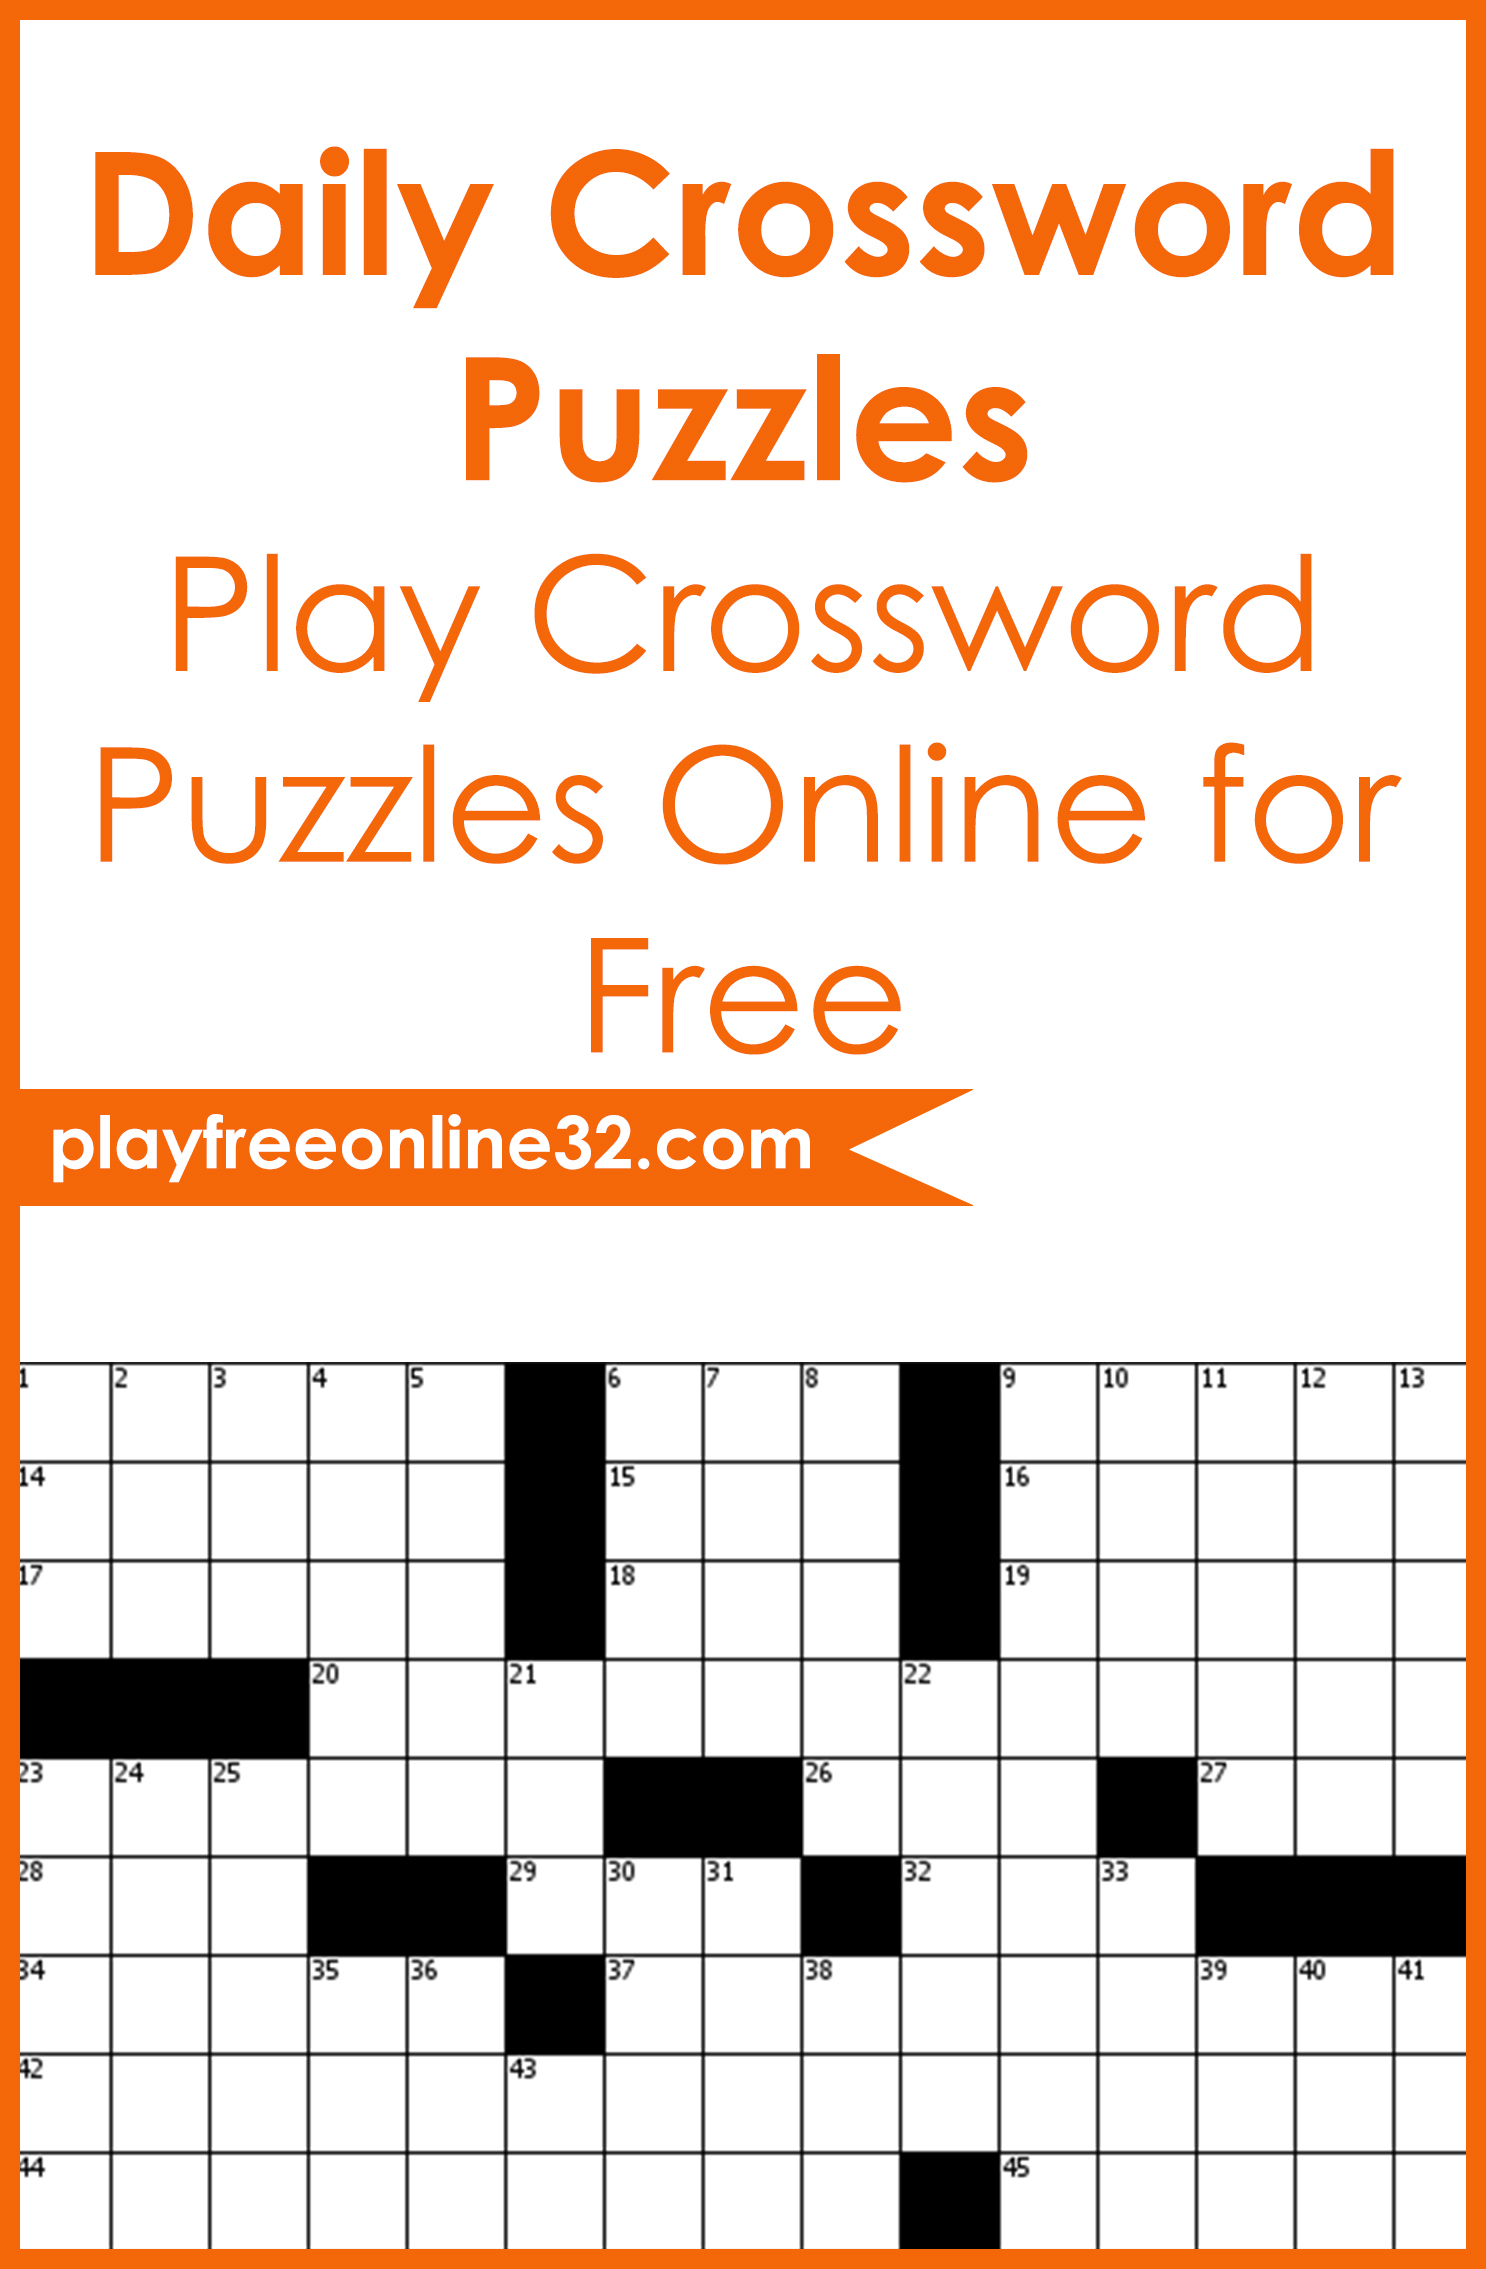 Daily Crossword Puzzles • Play Crossword Puzzles Online for Free